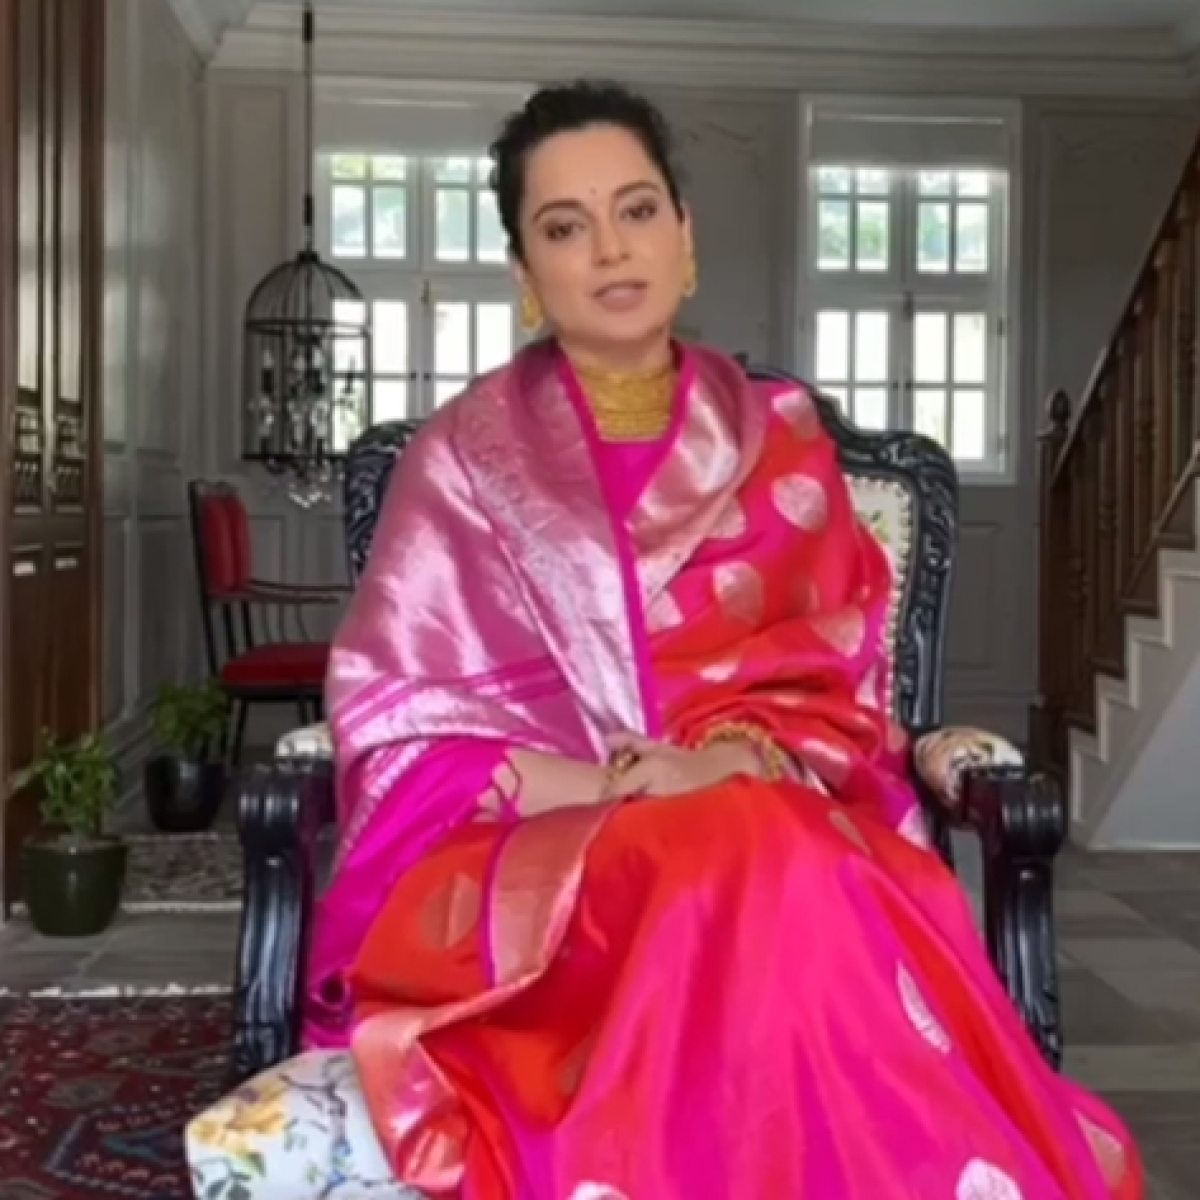 Kangana Ranaut donates Rs 5 lakh to daily wage workers of 'Thalaivi', FEFSI relief fund